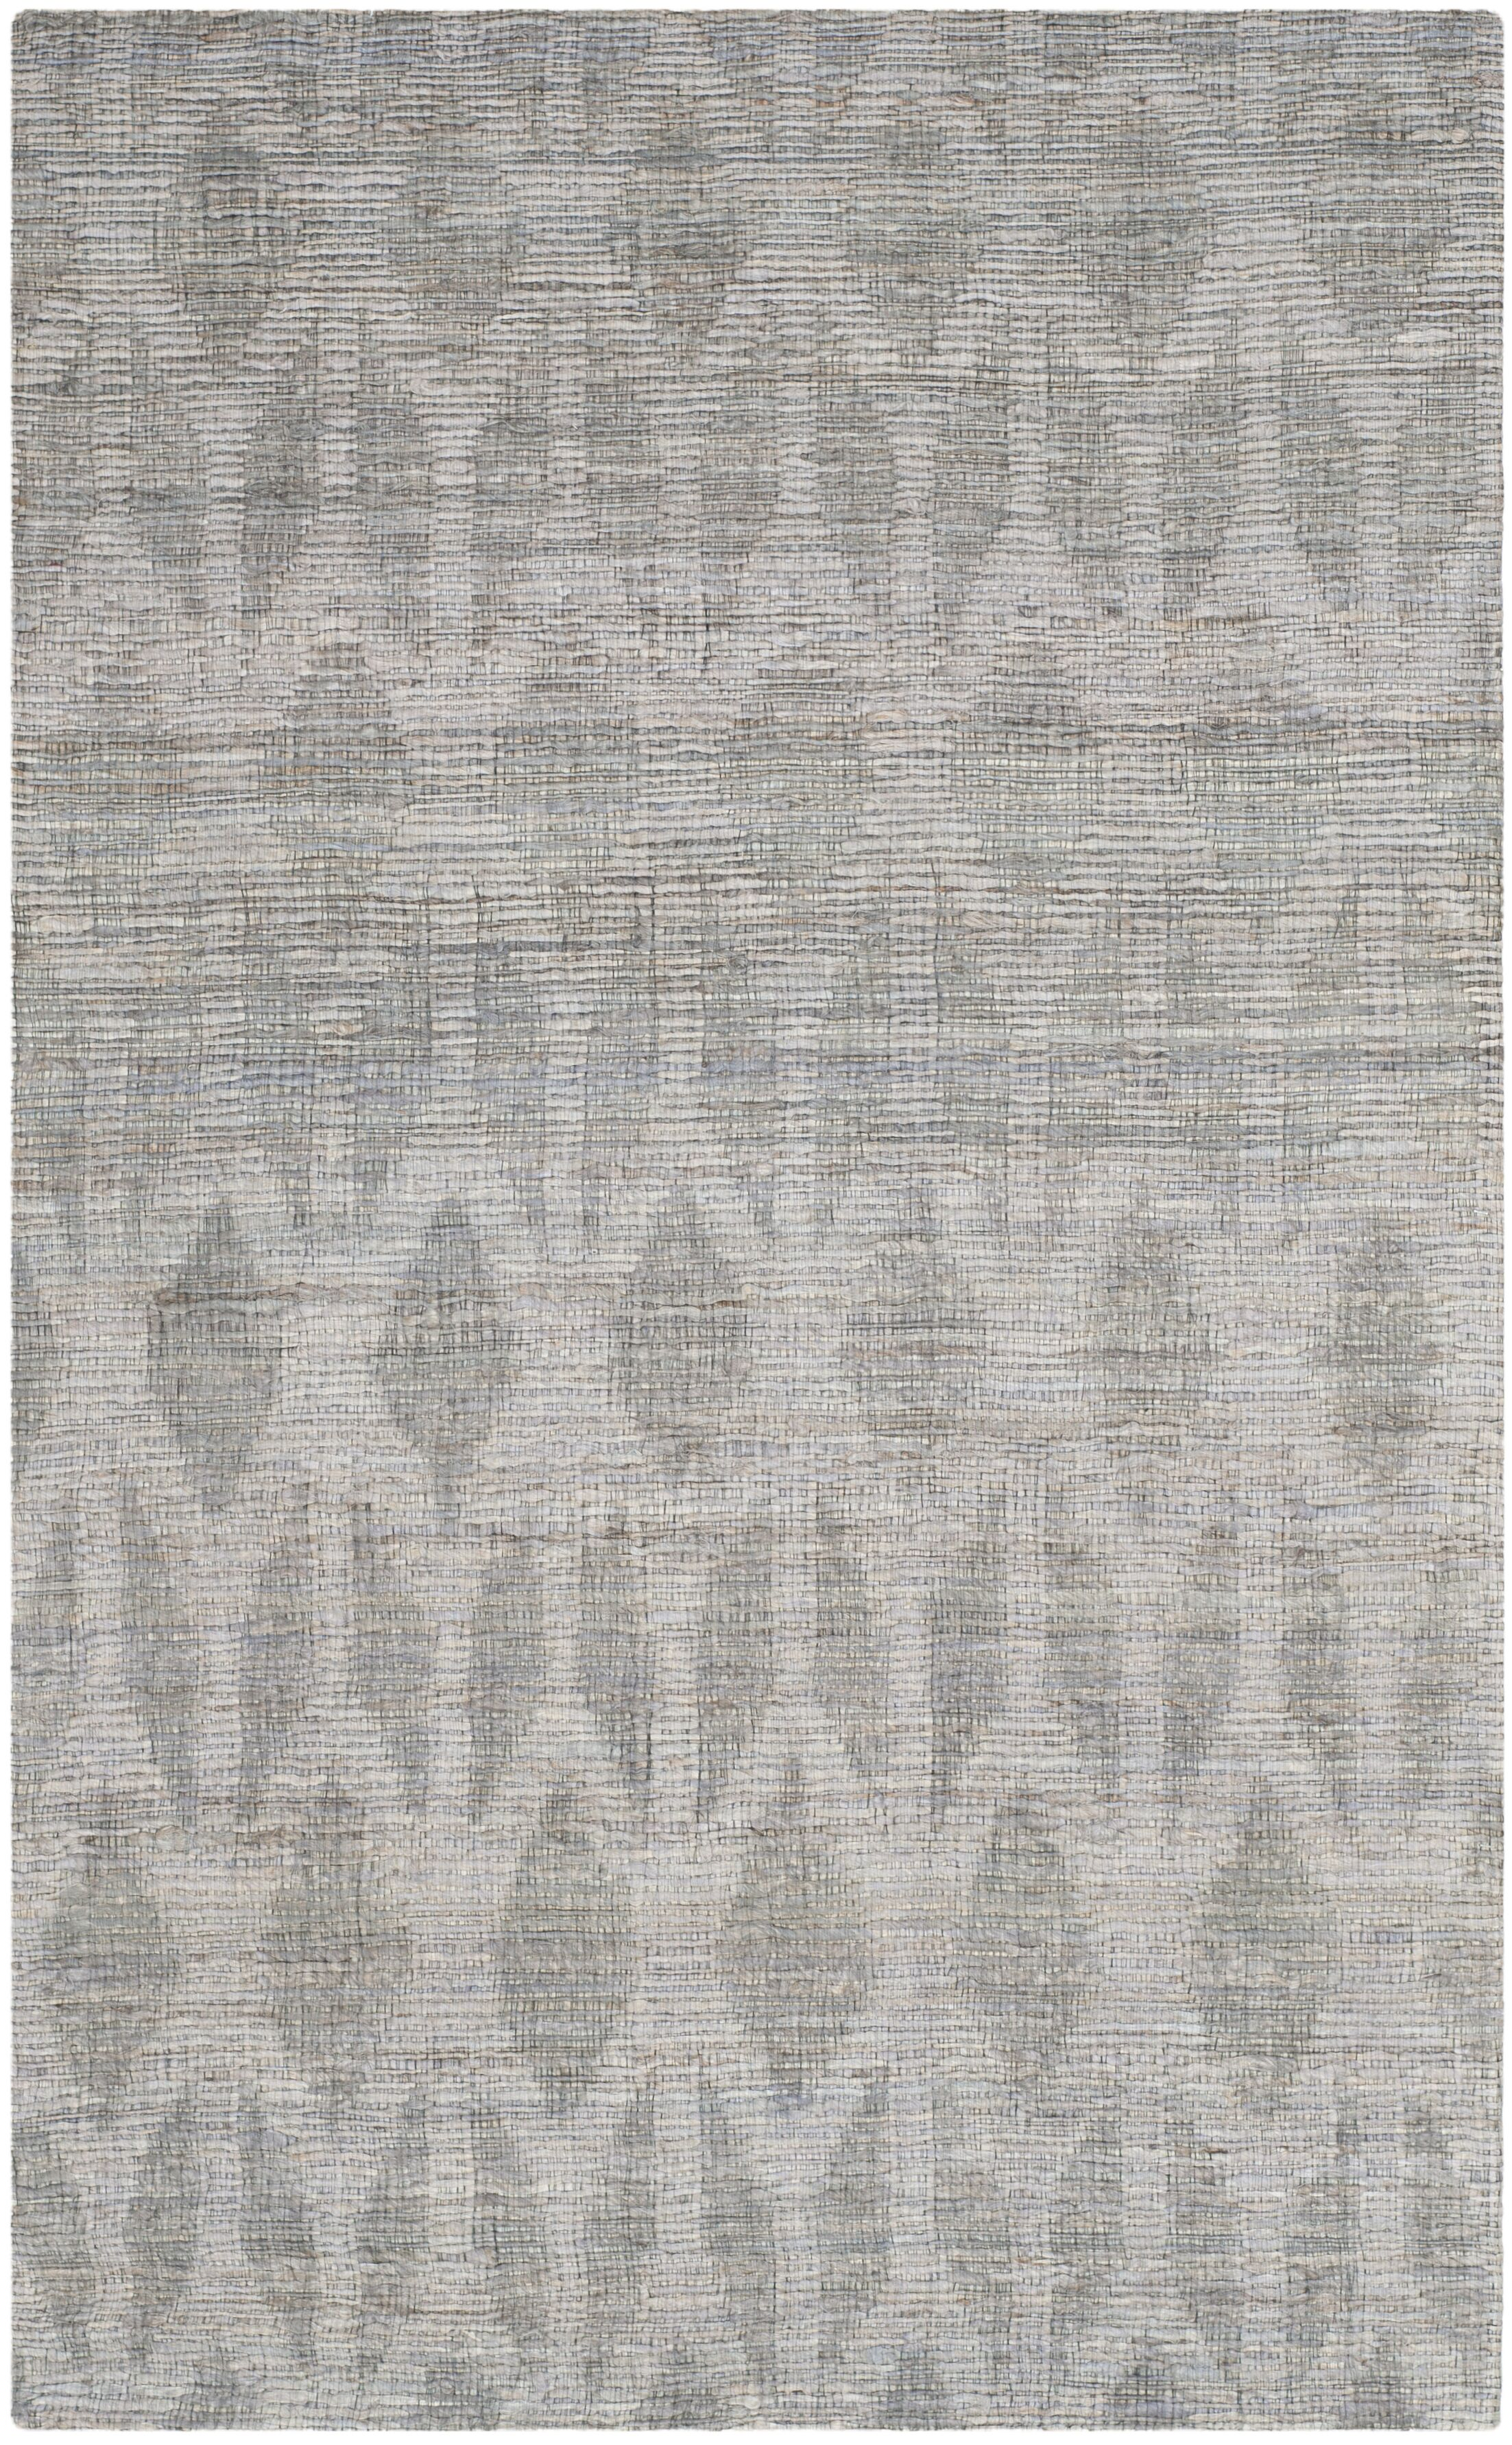 Gilchrist Hand-Woven Grey/Gold Area Rug Rug Size: Rectangle 6' x 9'